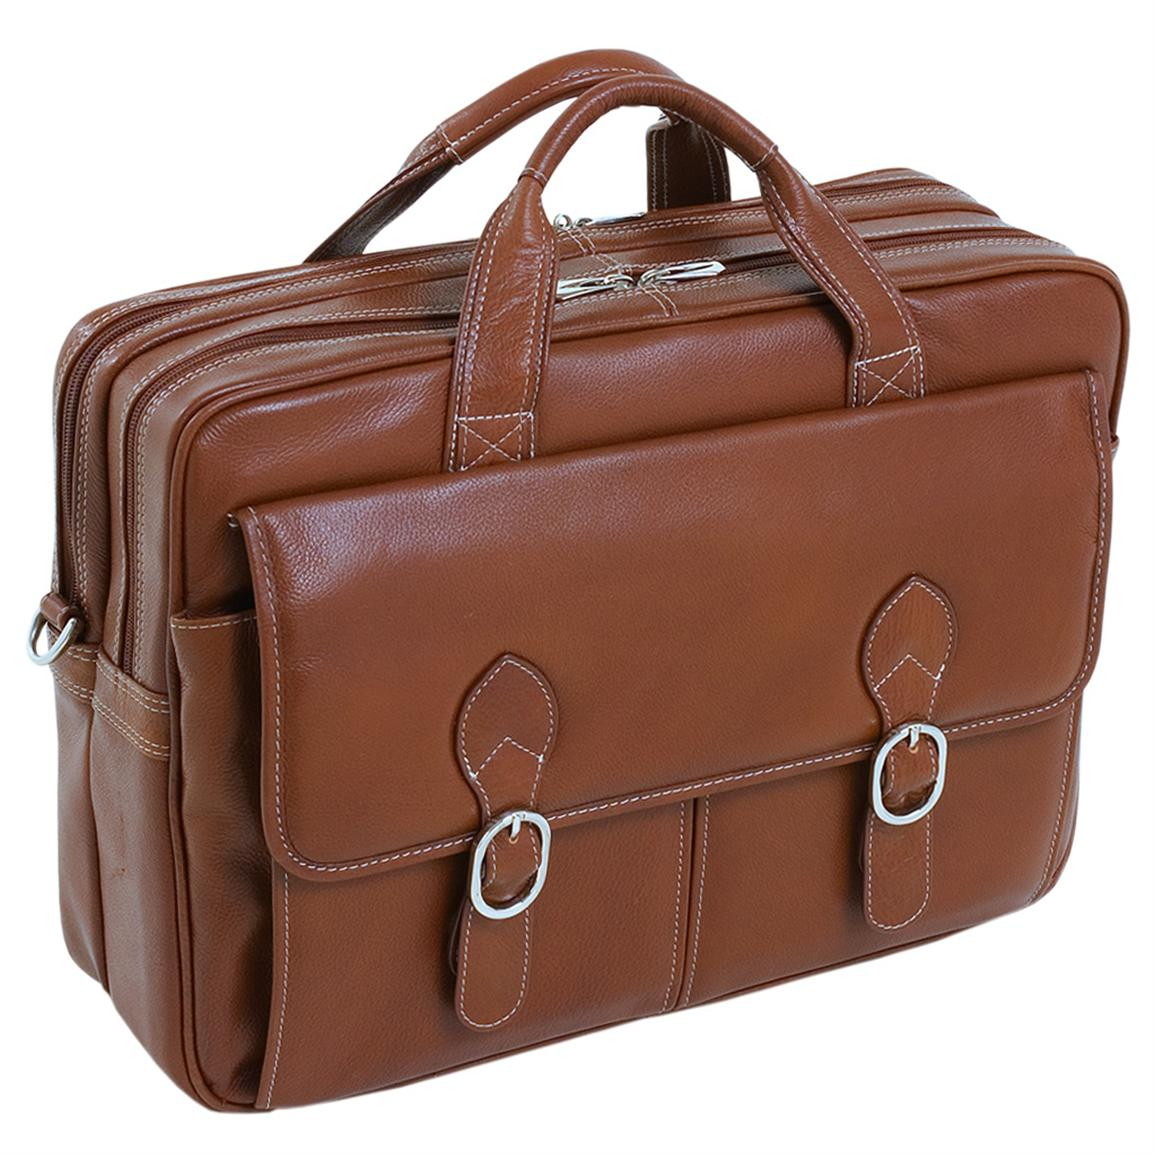 McKlein USA Kenwood Leather Double Compartment Laptop Case